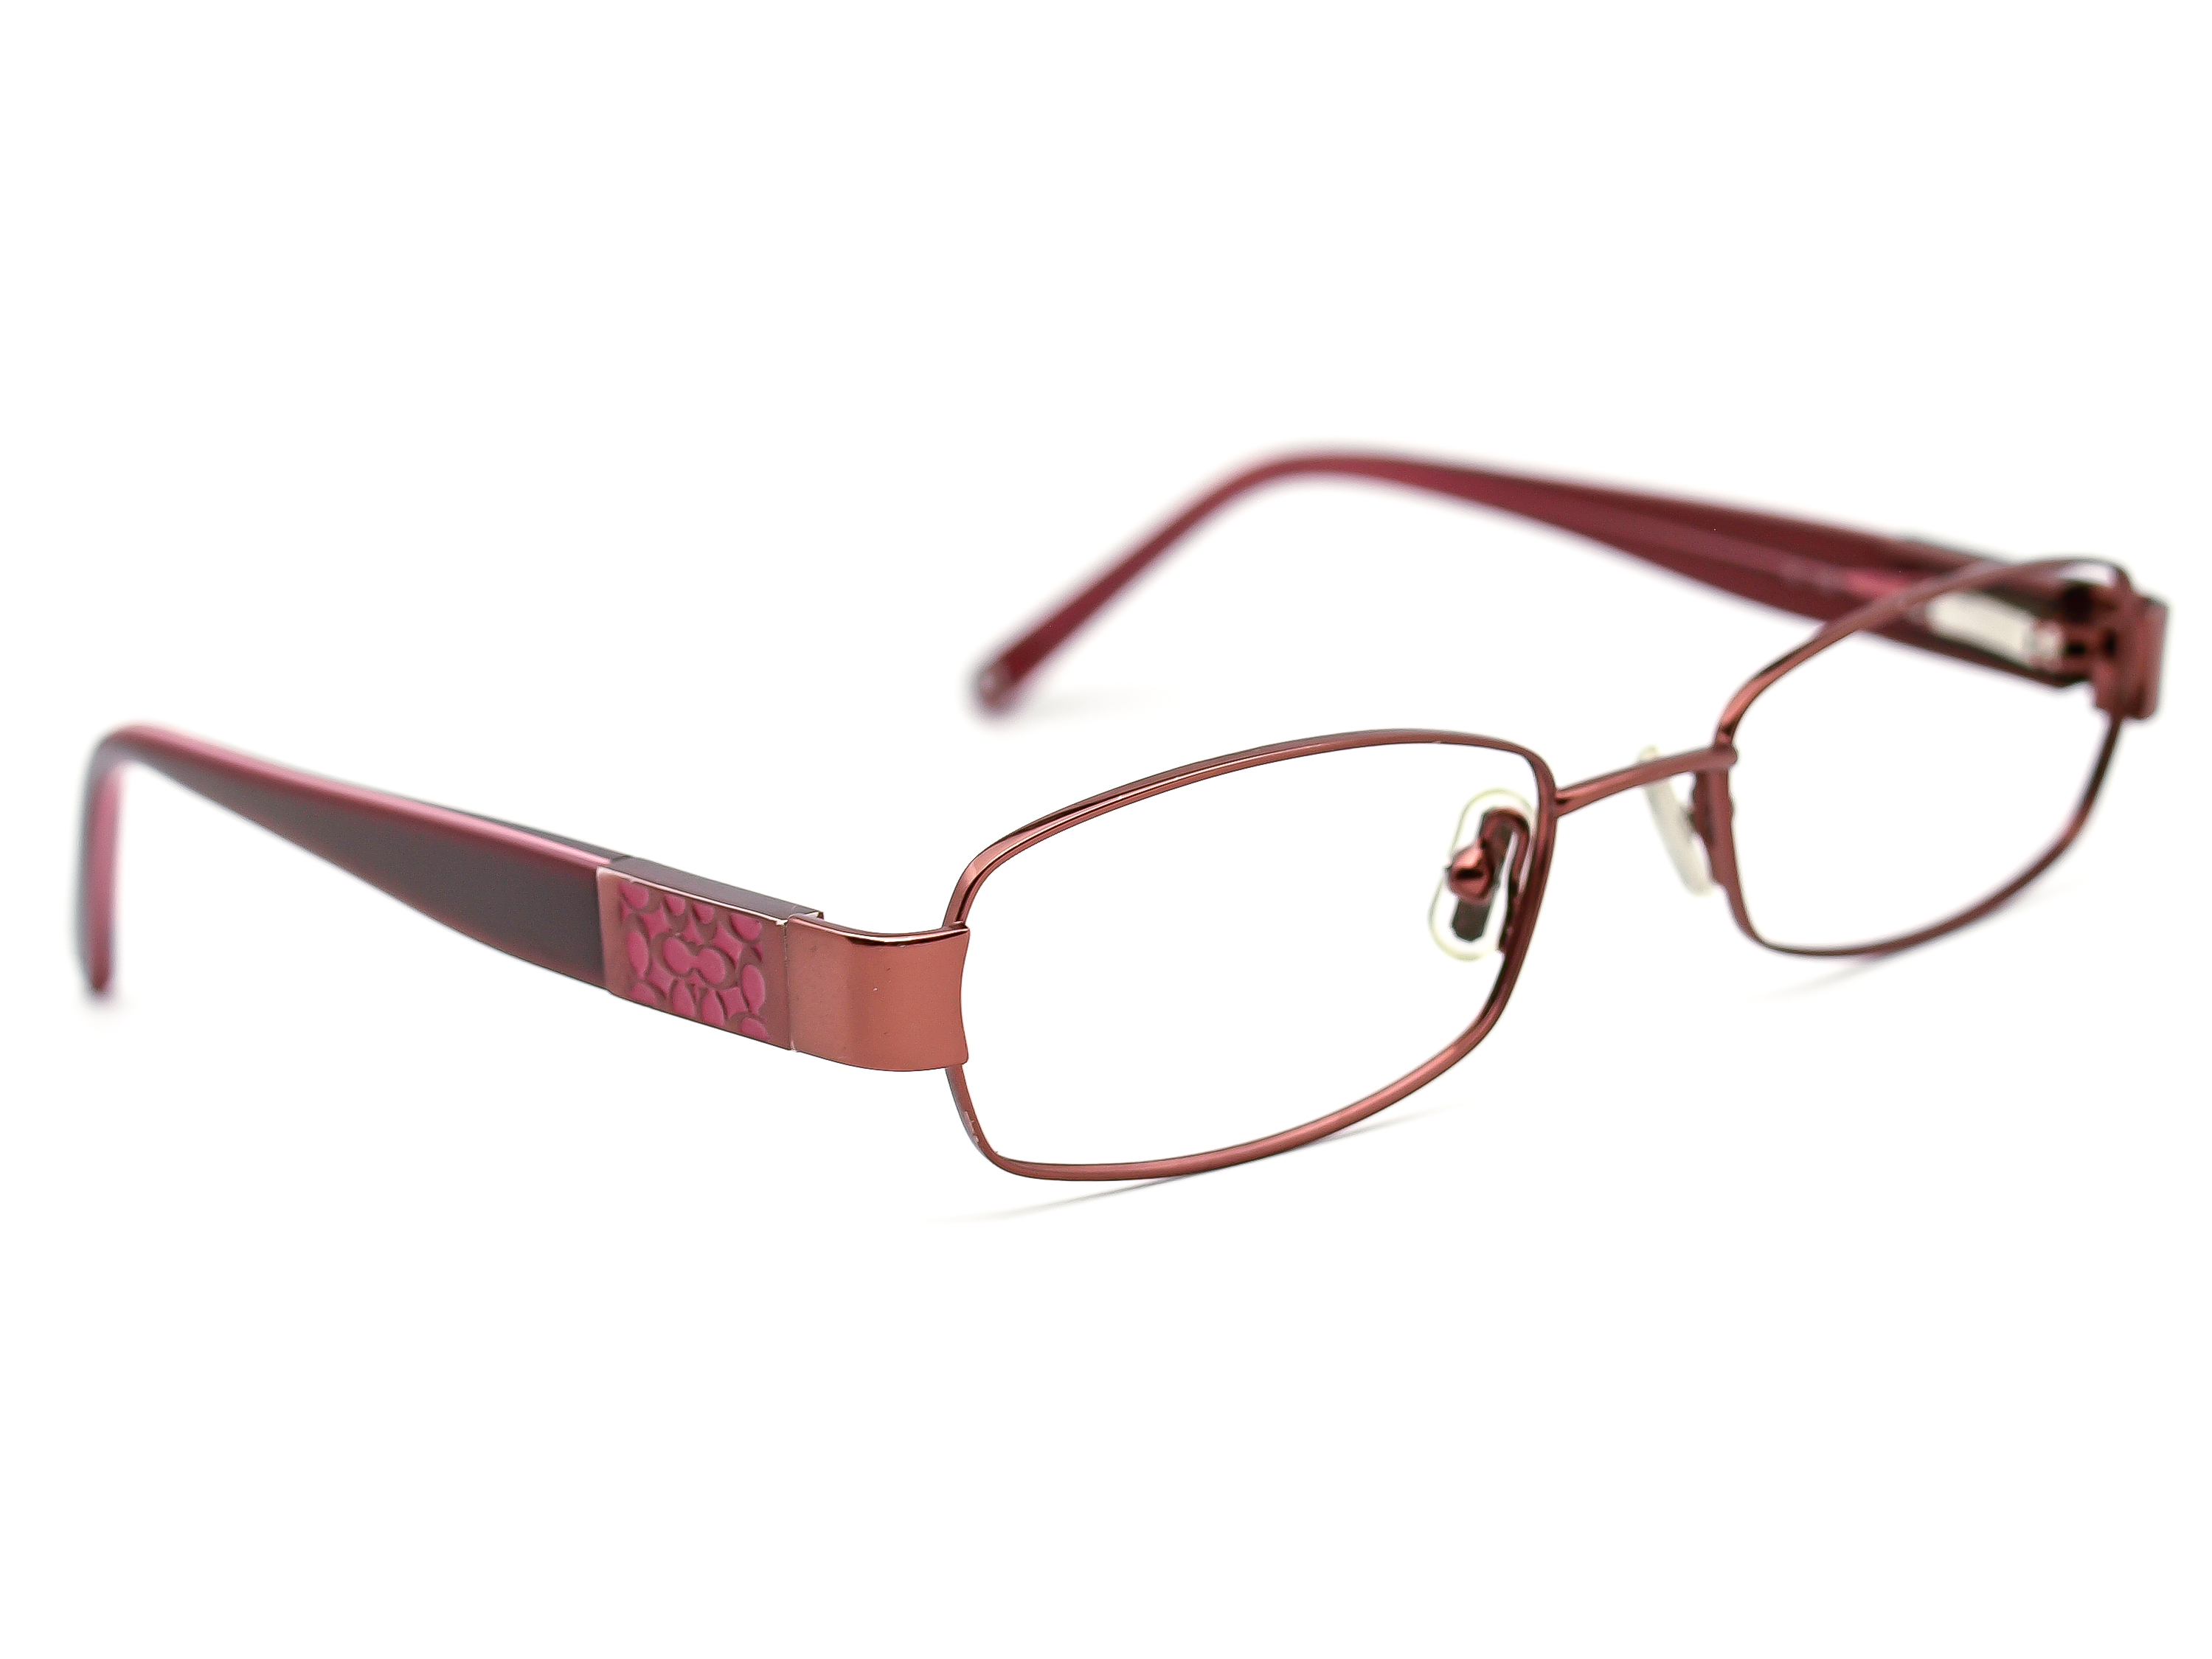 Coach IVY 1005 Bordeaux Eyeglasses